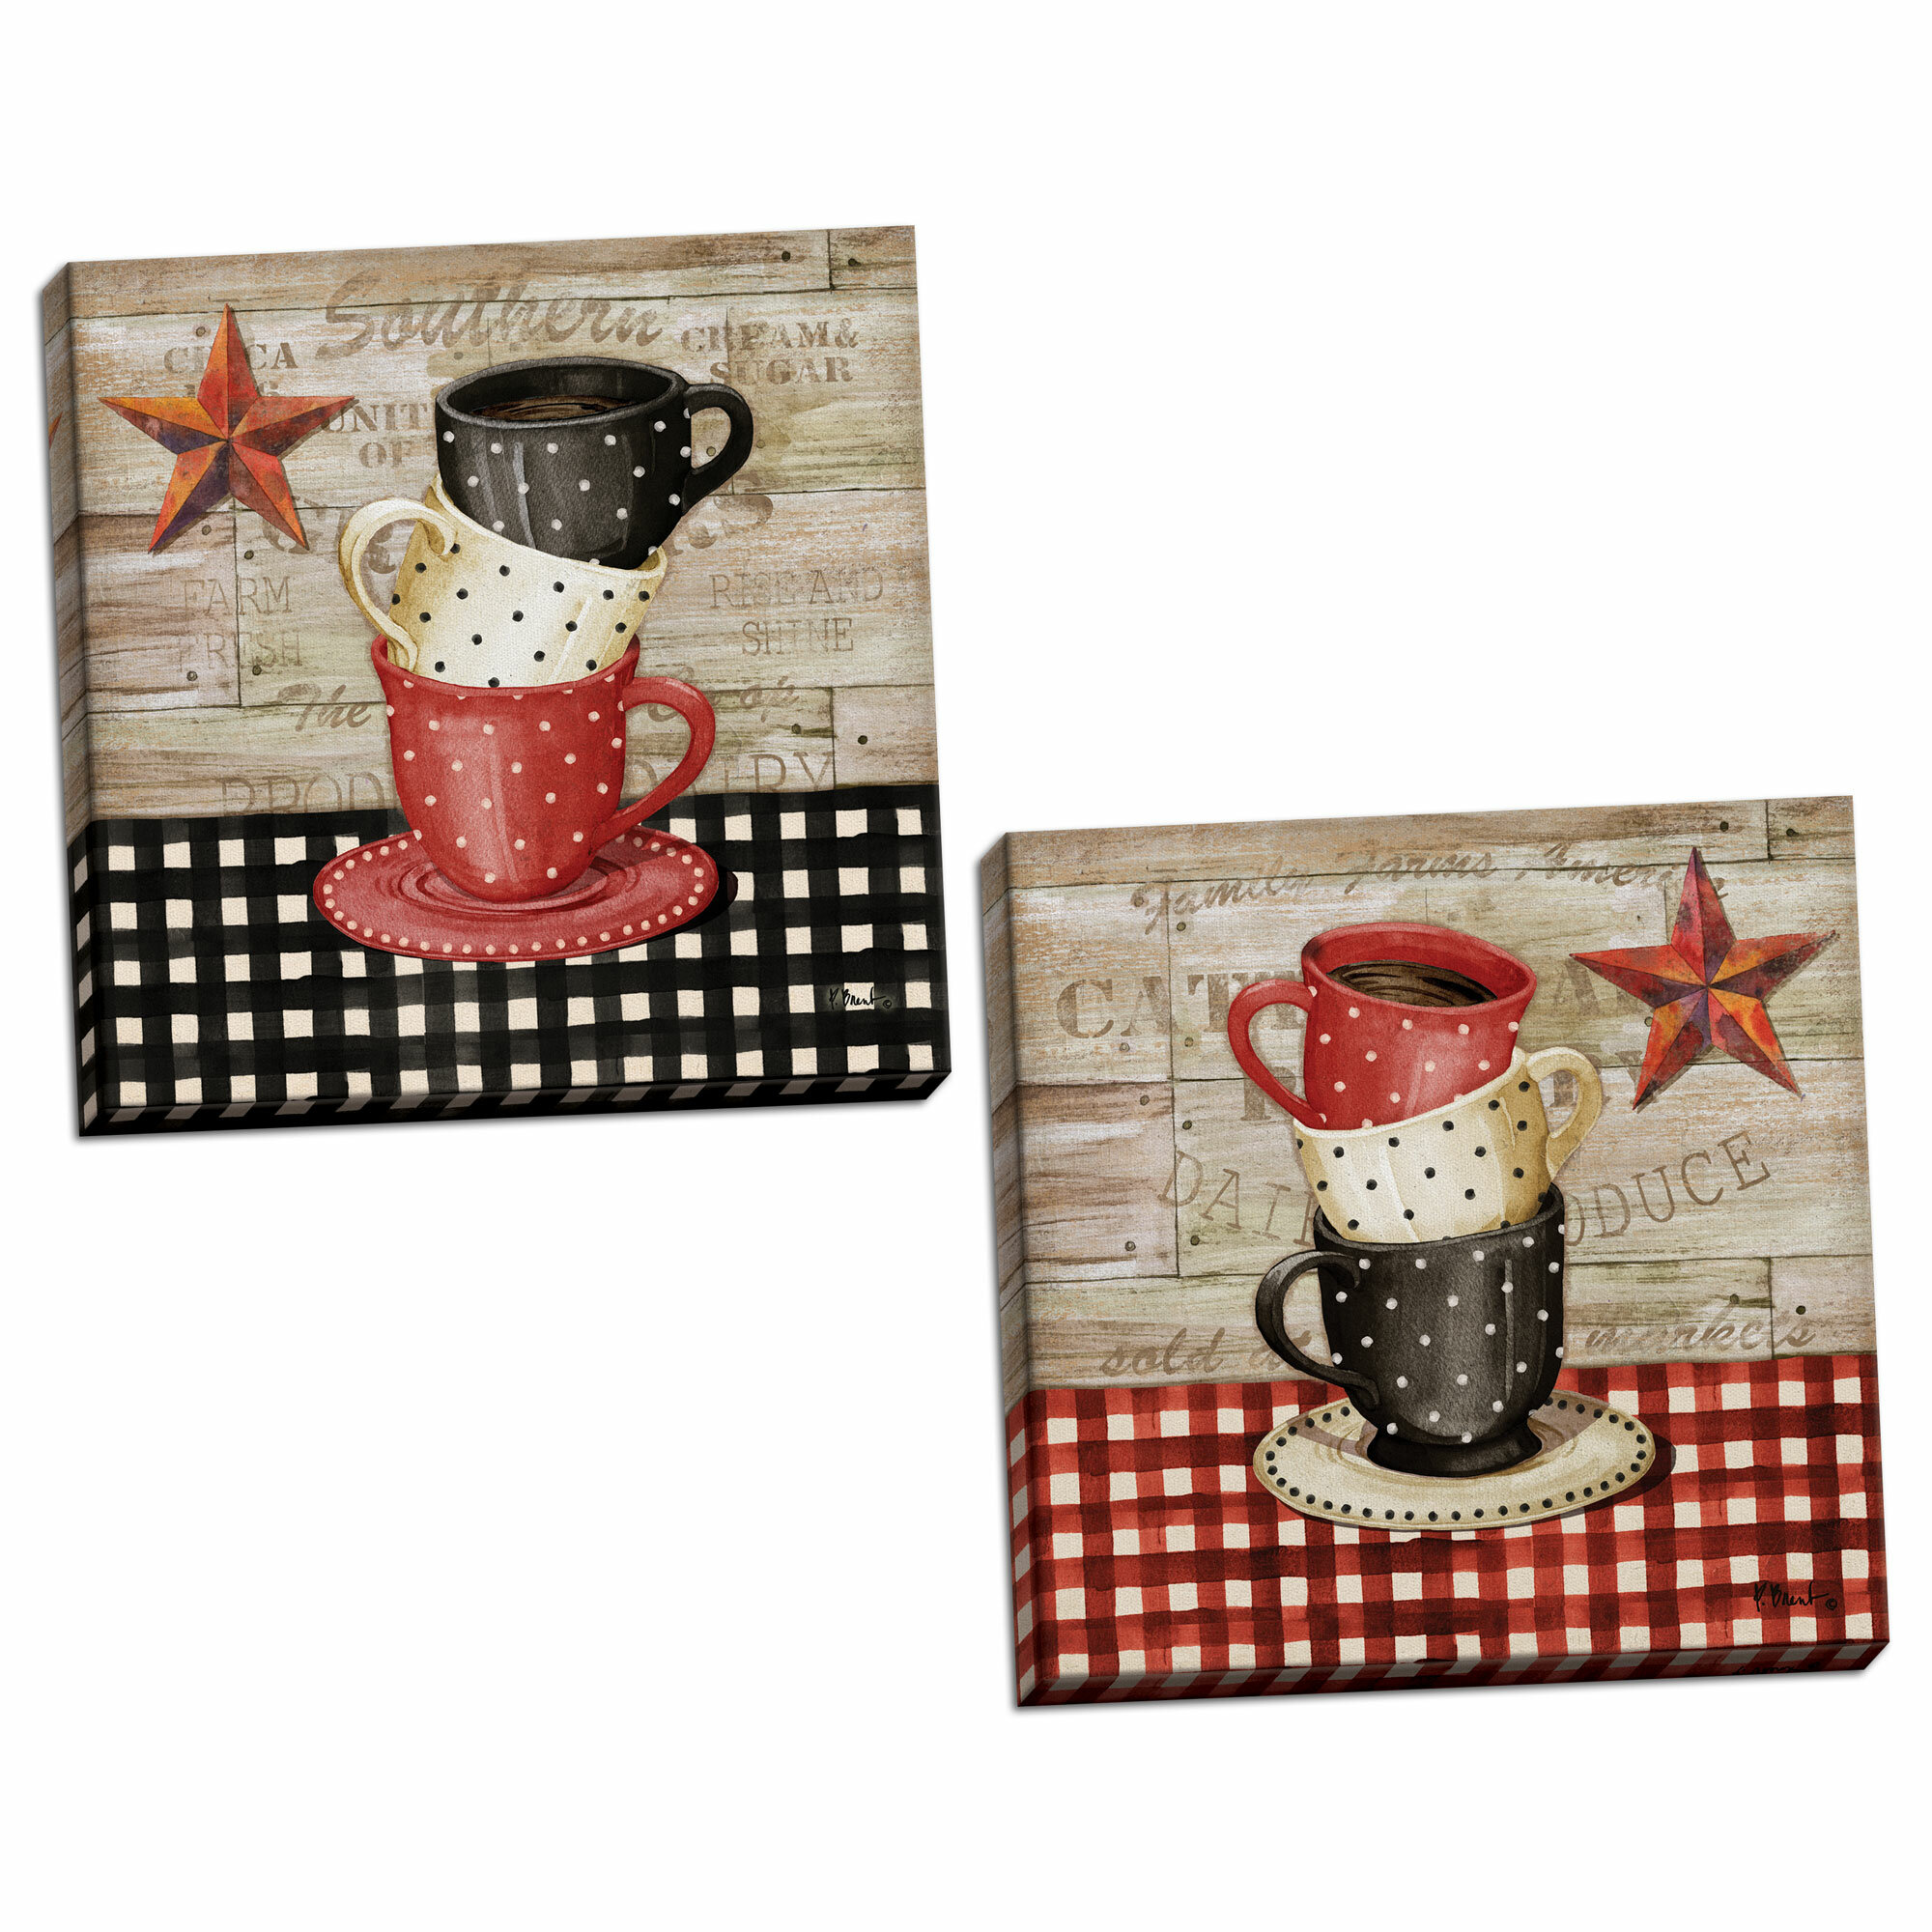 August Grove Farmhouse Kitchen Decor Stacked Coffee Cup Barnstar By Paul Brent 2 Piece Graphic Art Print Set Reviews Wayfair